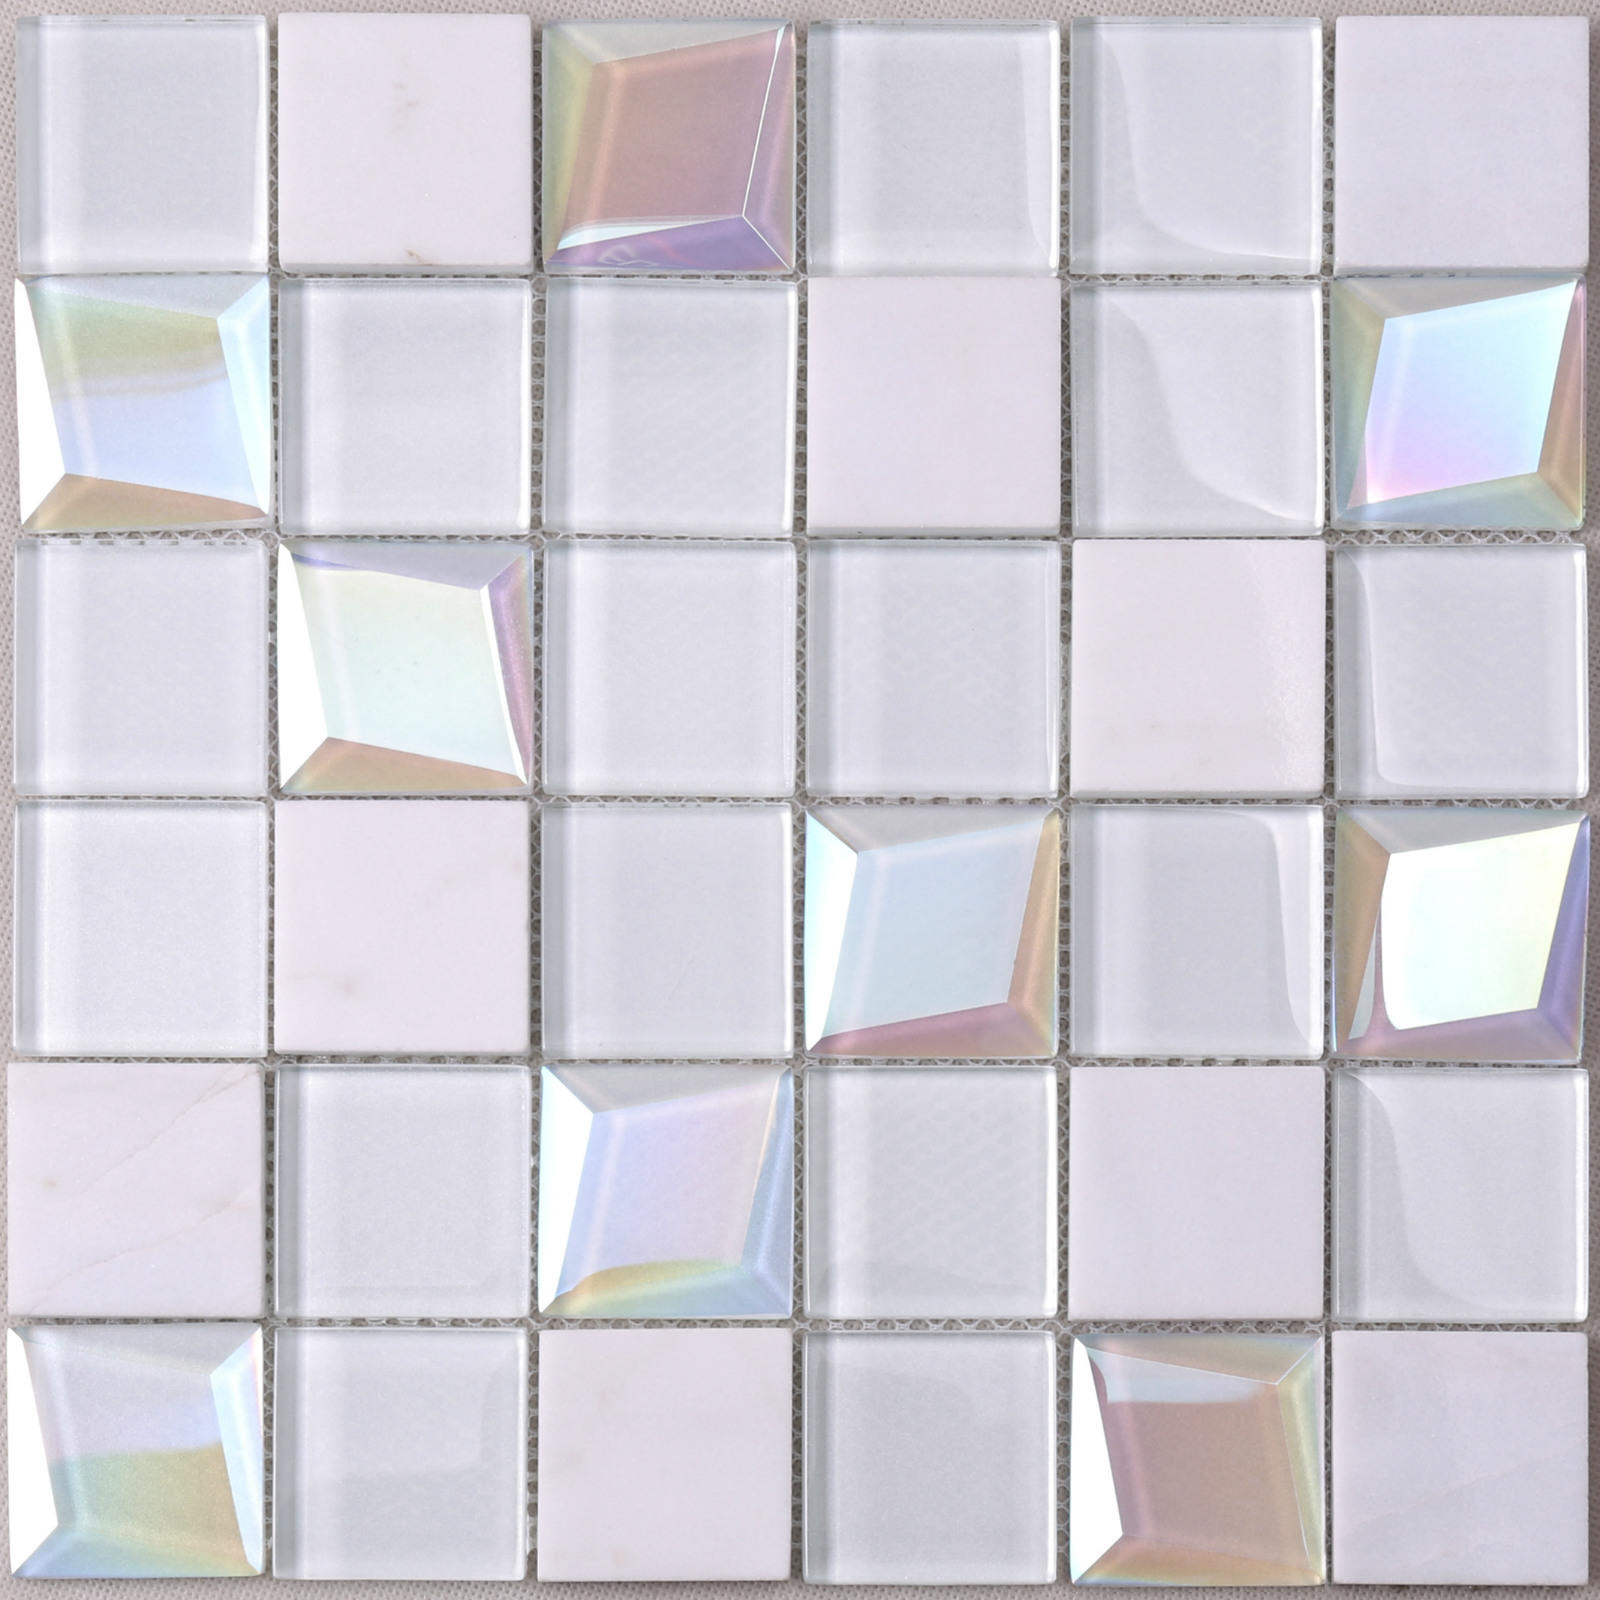 HMB62 Parquet White 3D Beveled Glass Mix Stone Mosaic Tile